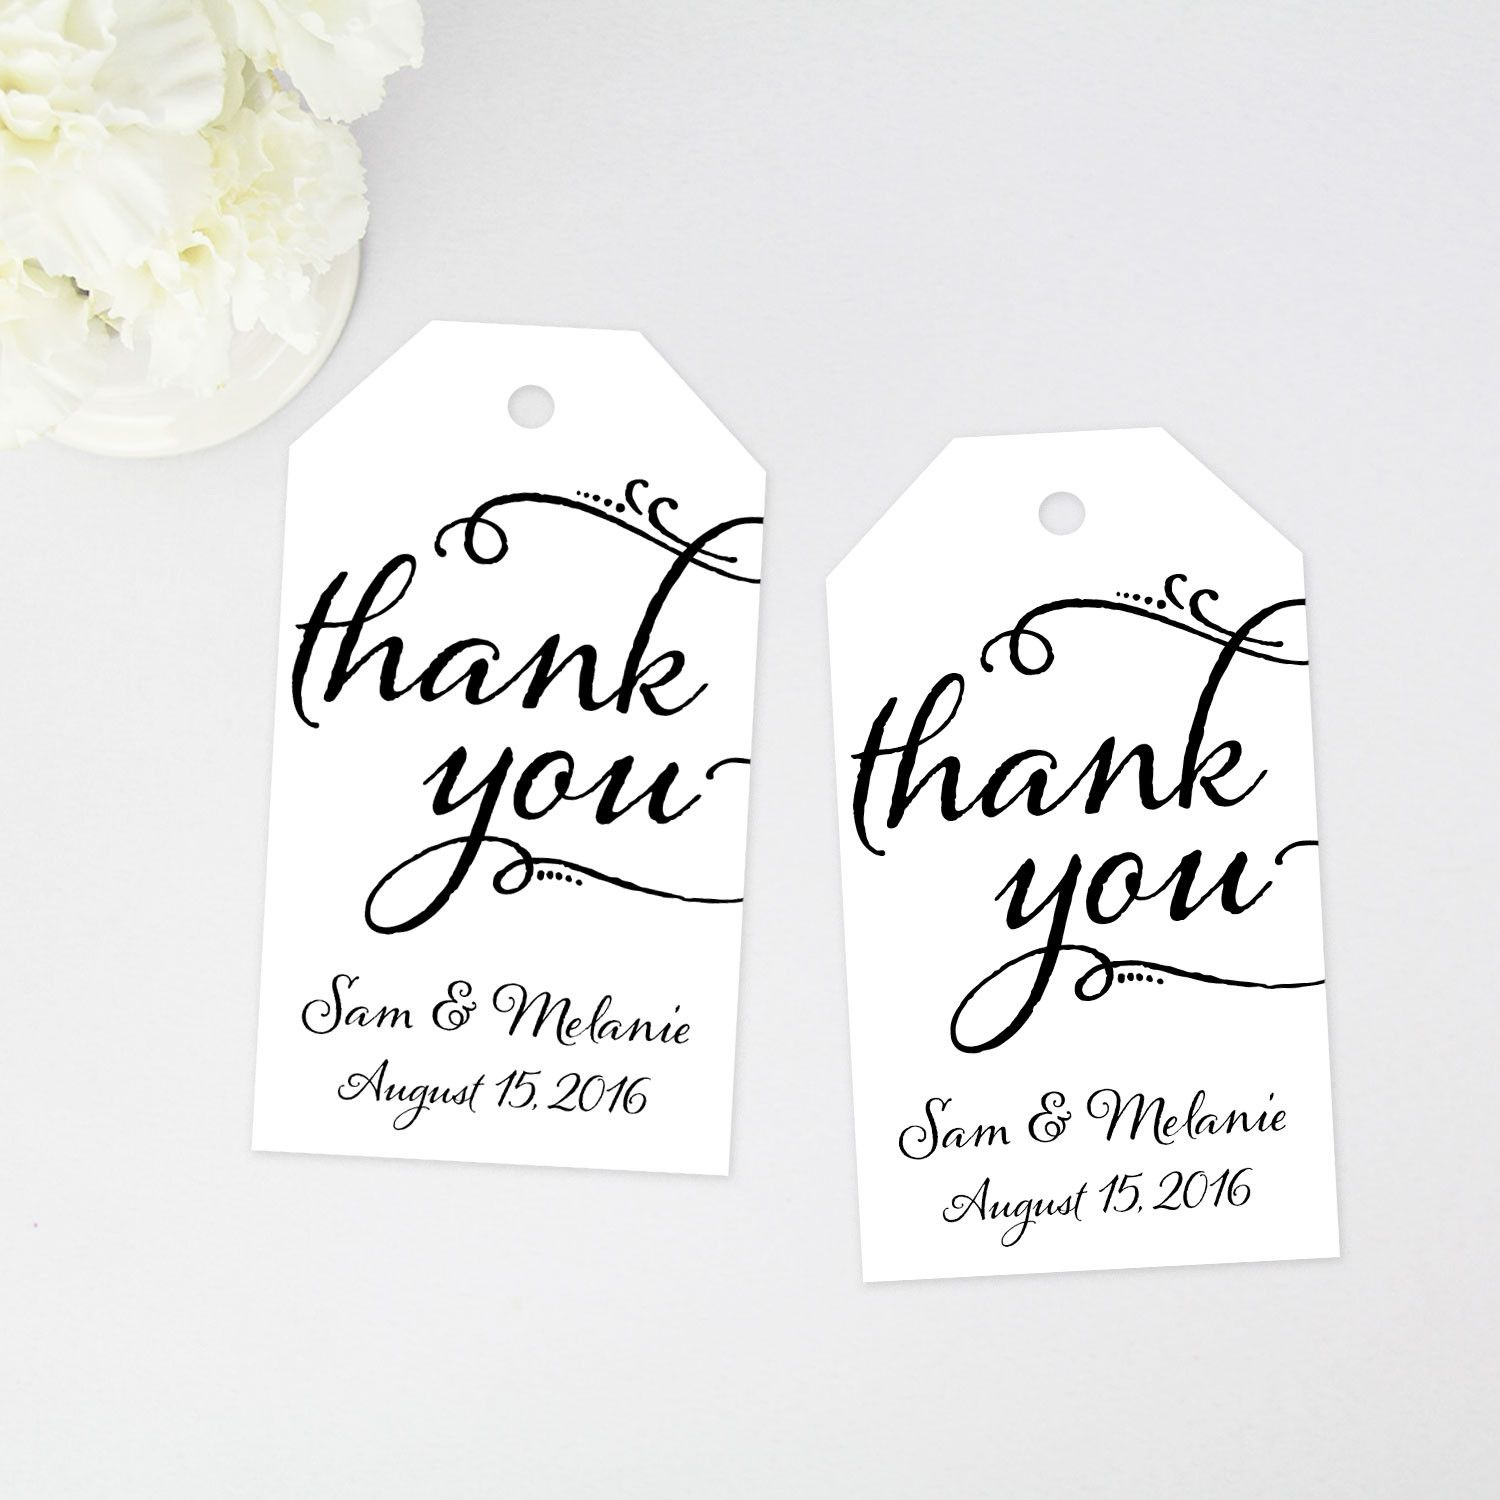 thank you tags - wedding favor tags - any occasion thank you tags ...